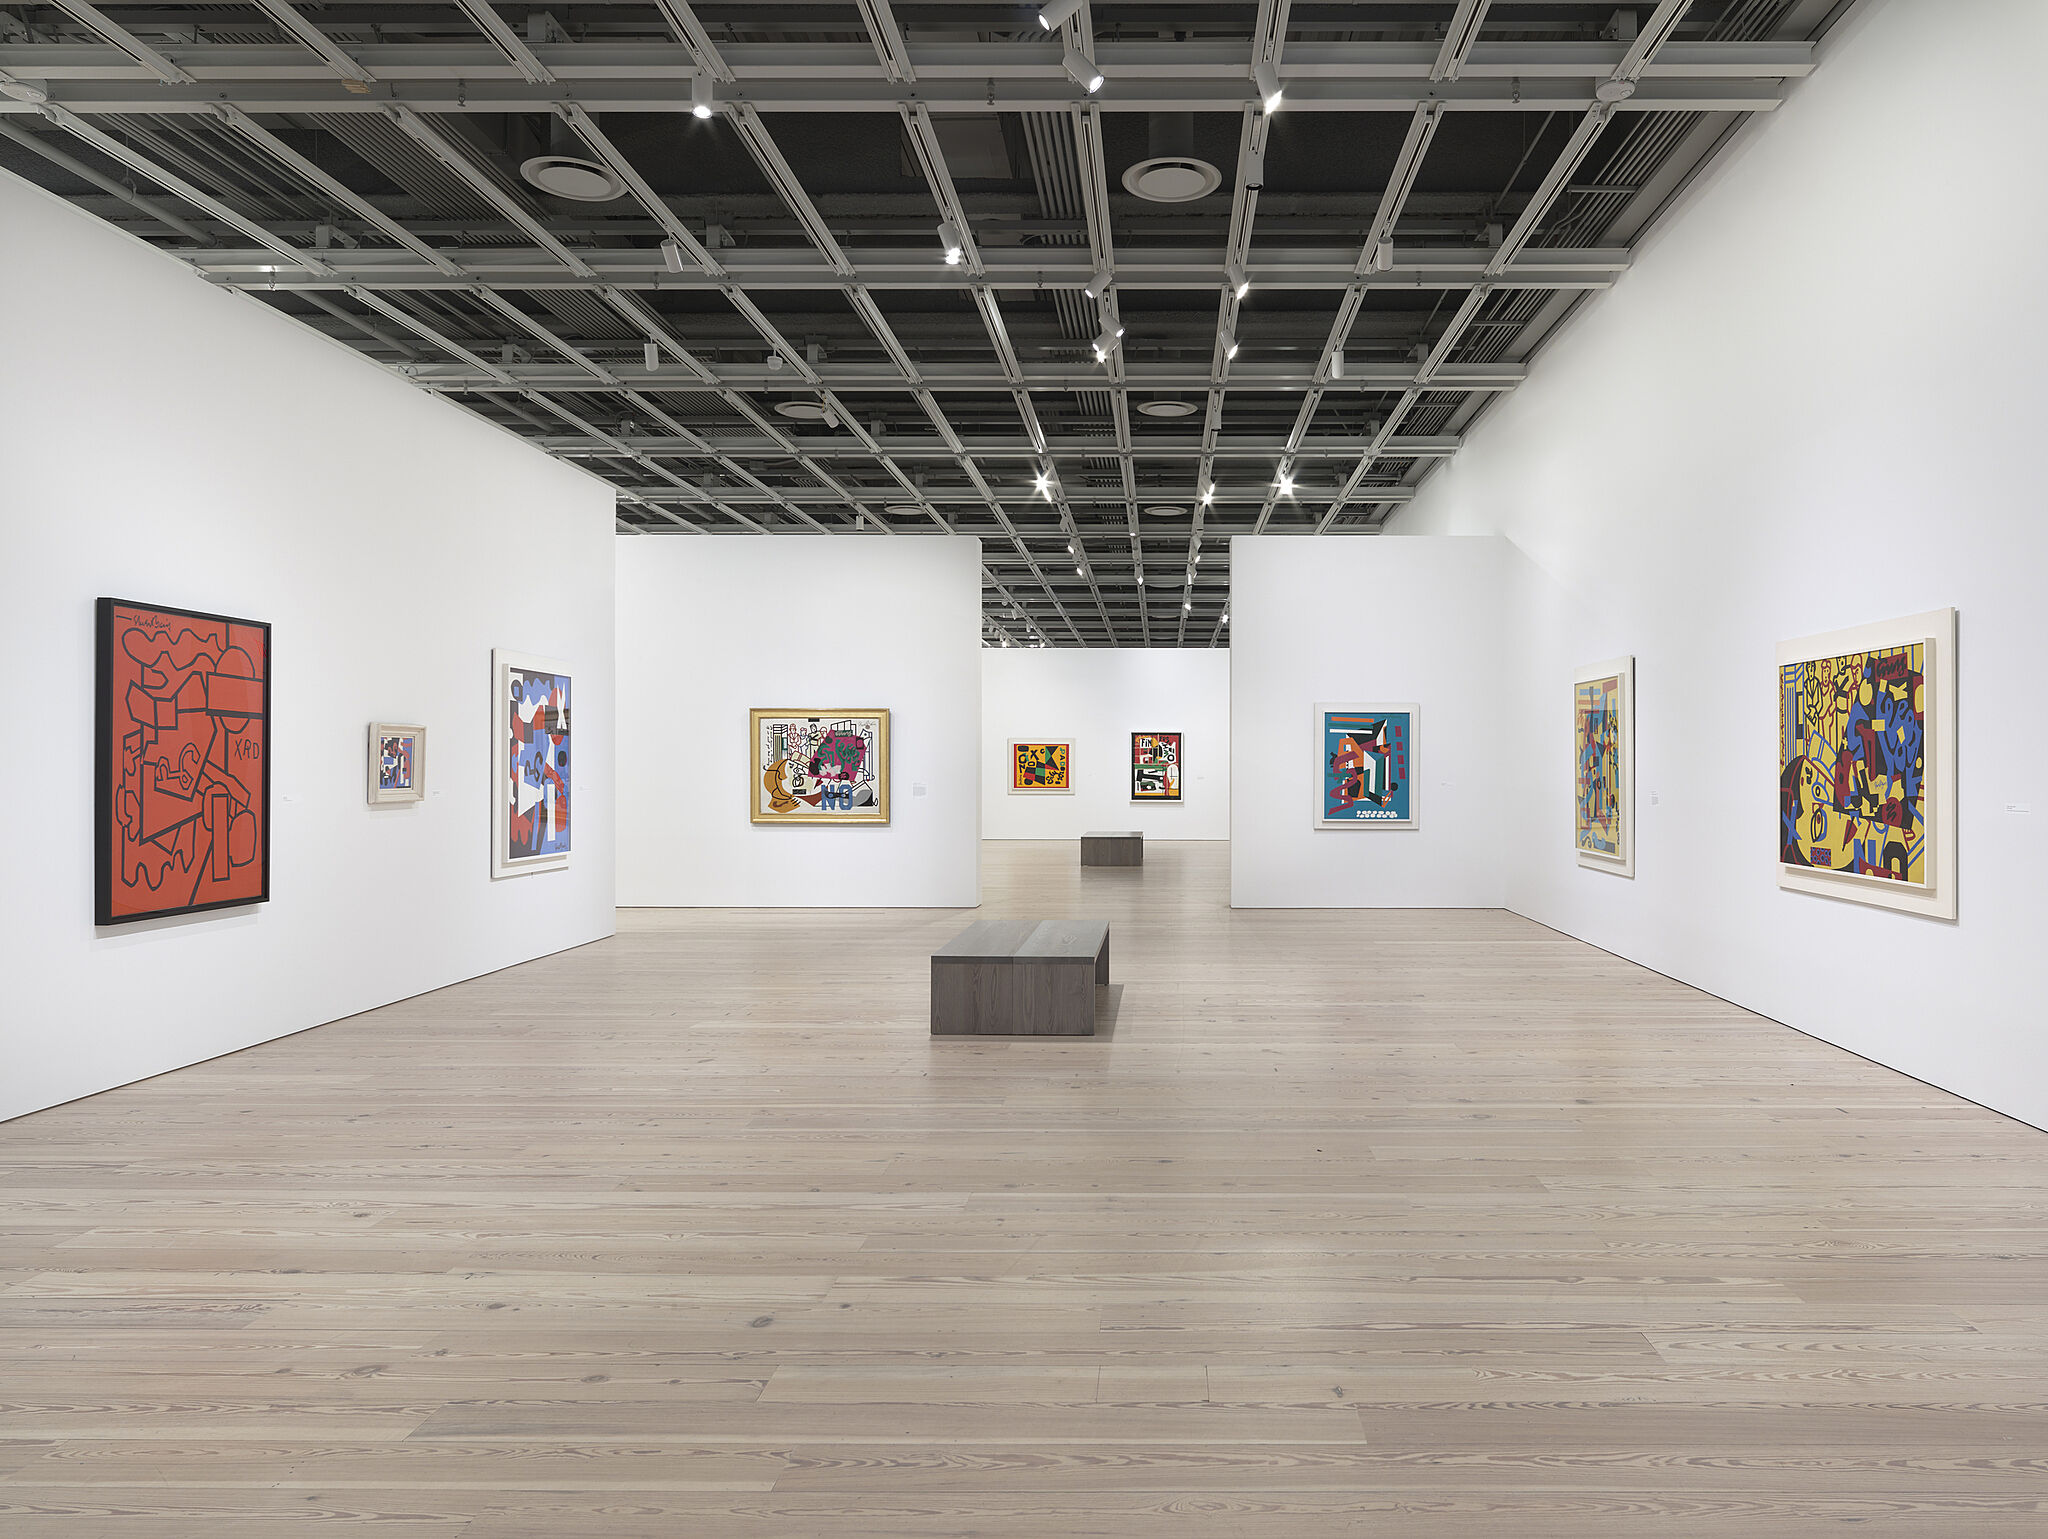 Large gallery space with paintings hanging on walls.